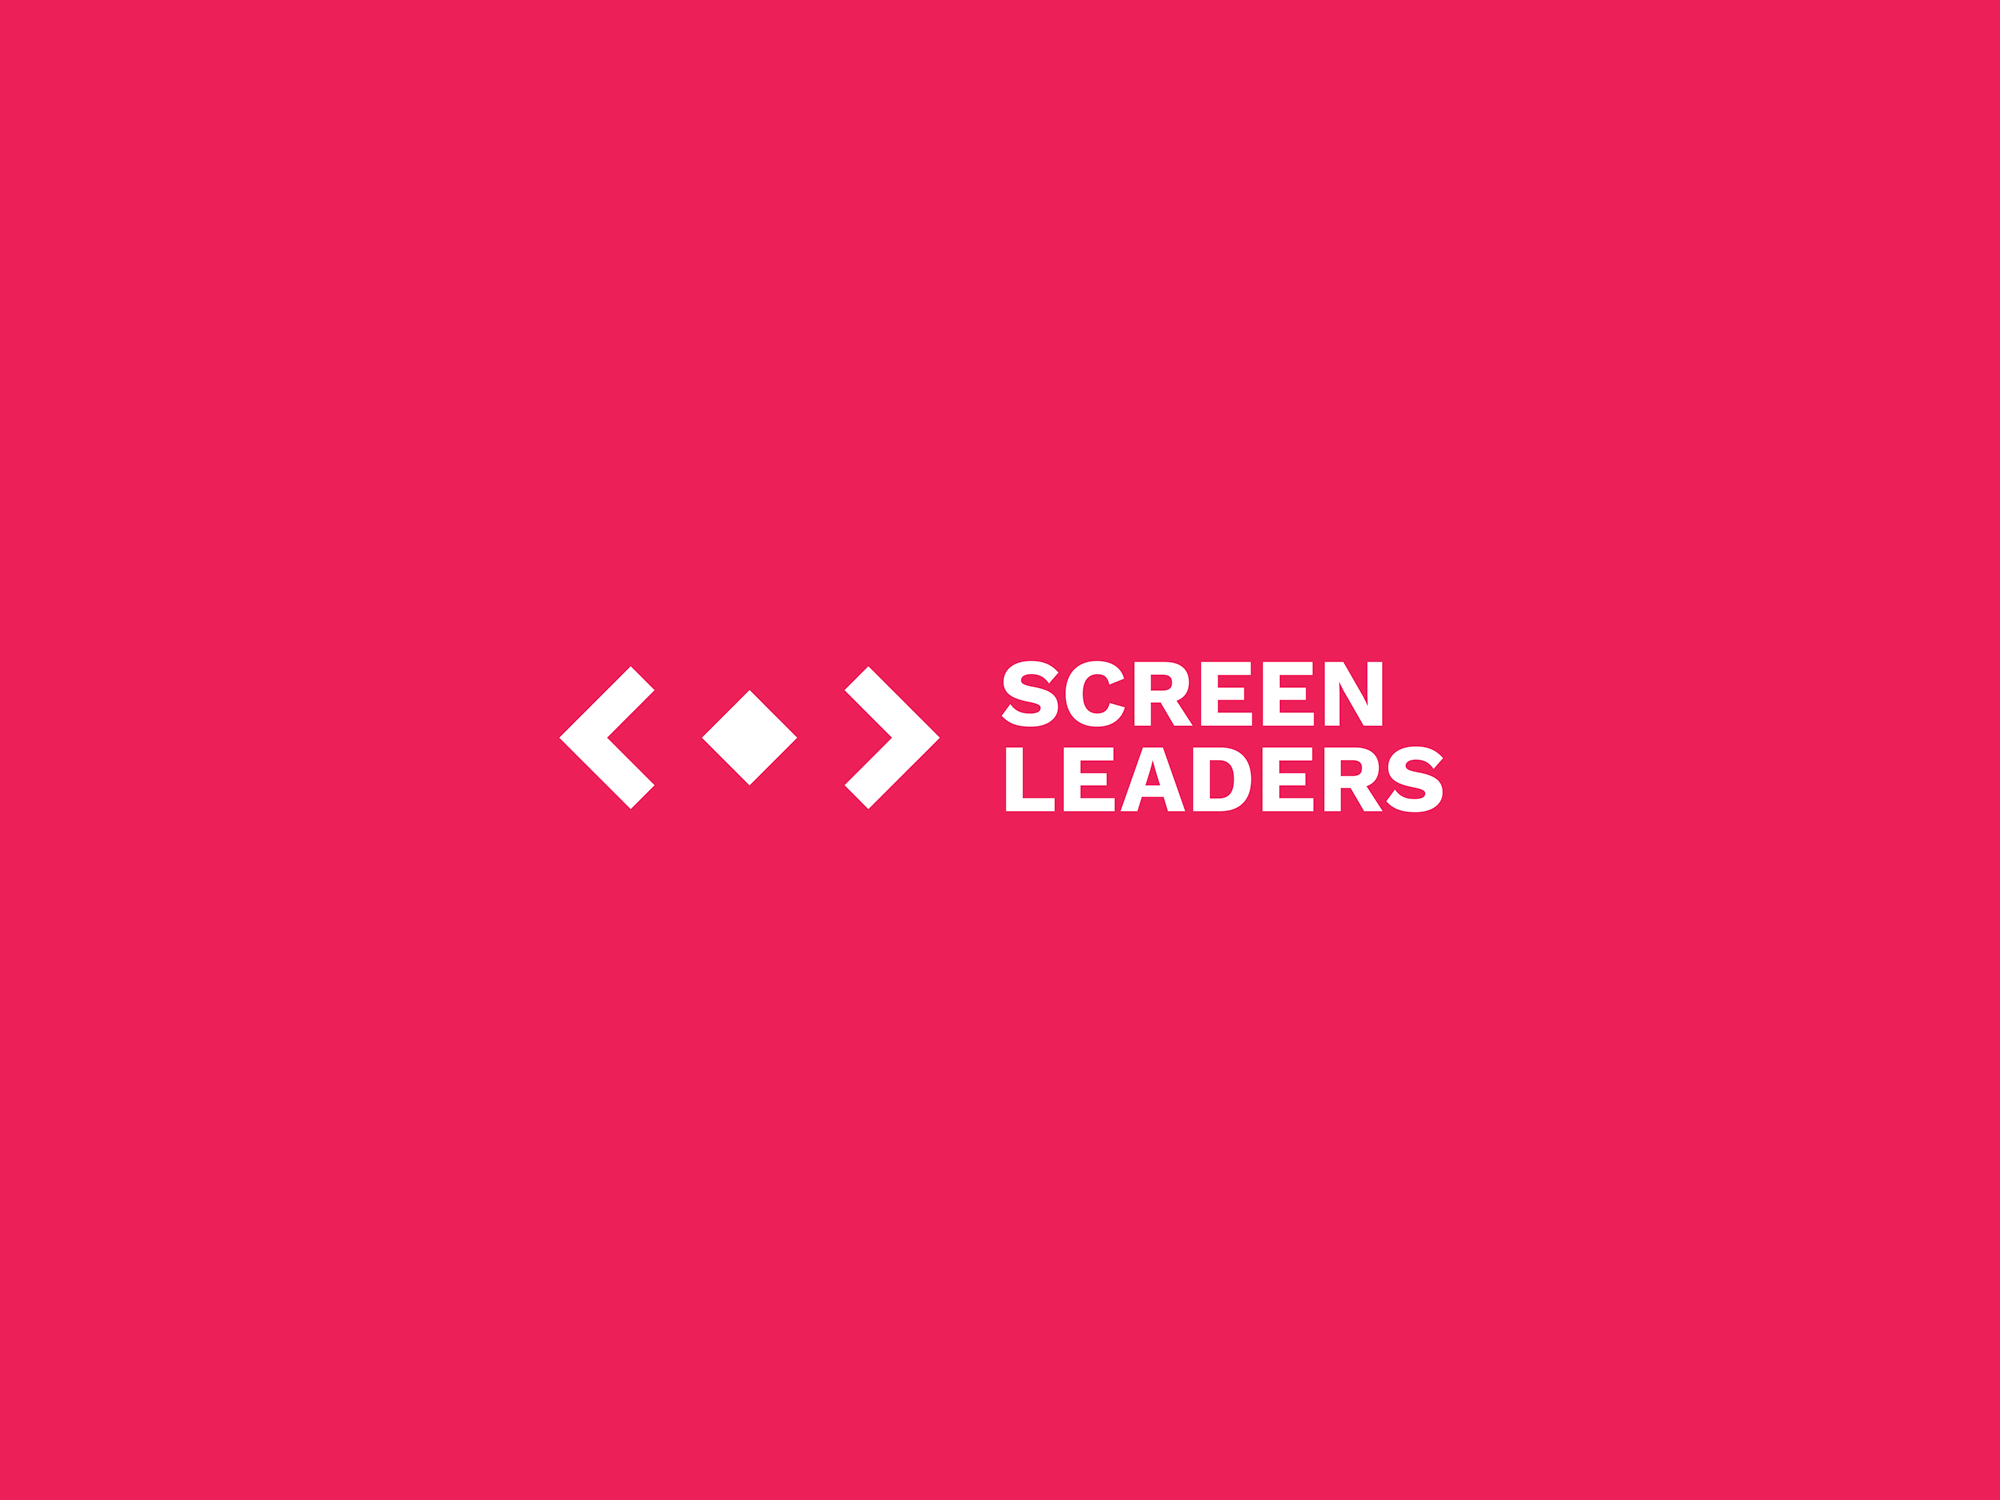 Cover image: Screen Leaders brand